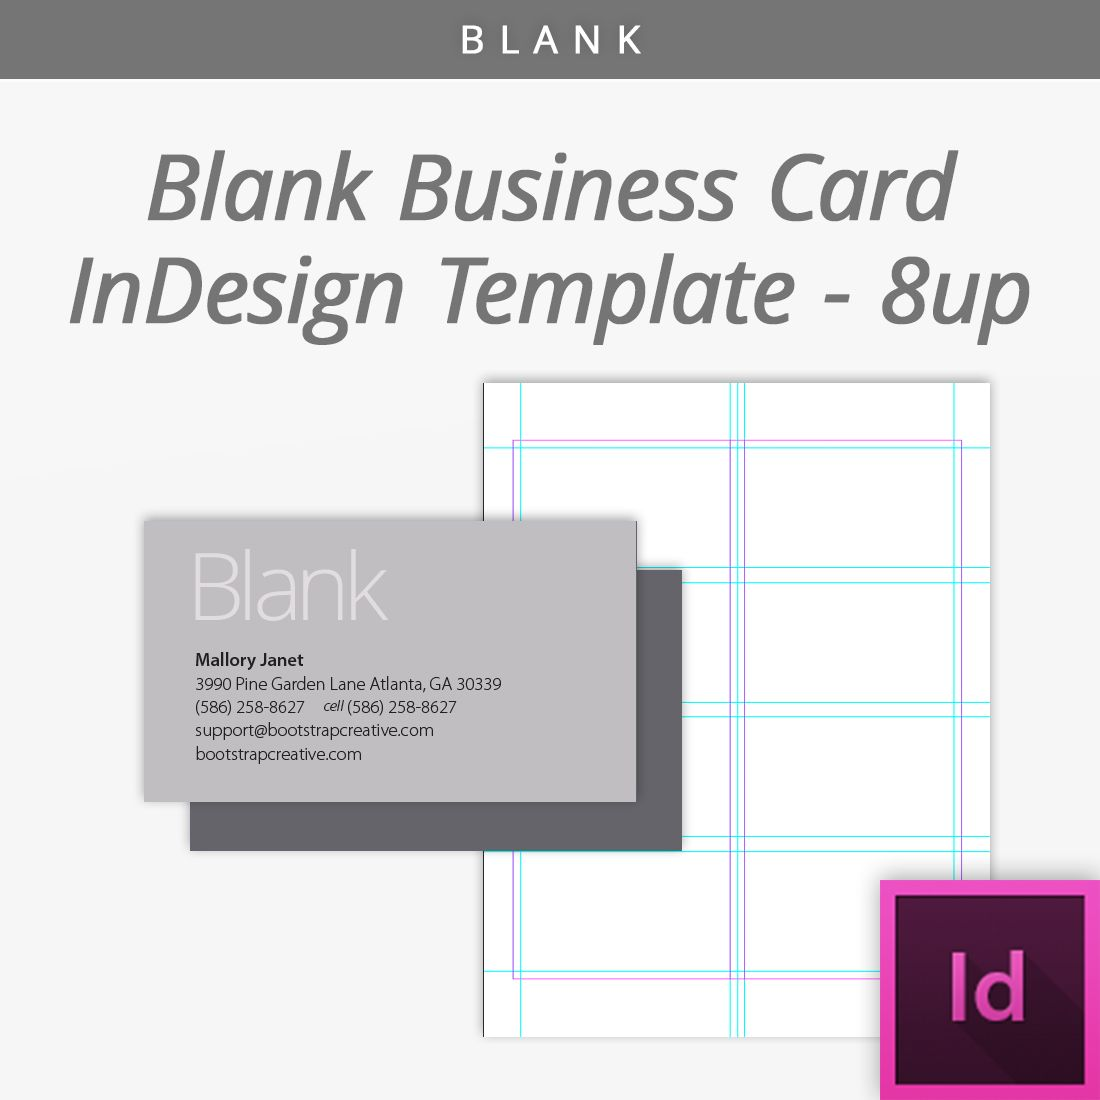 Blank Indesign Business Card Template 8 Up Download Business Card Template Word Free Business Card Templates Business Card Templates Download